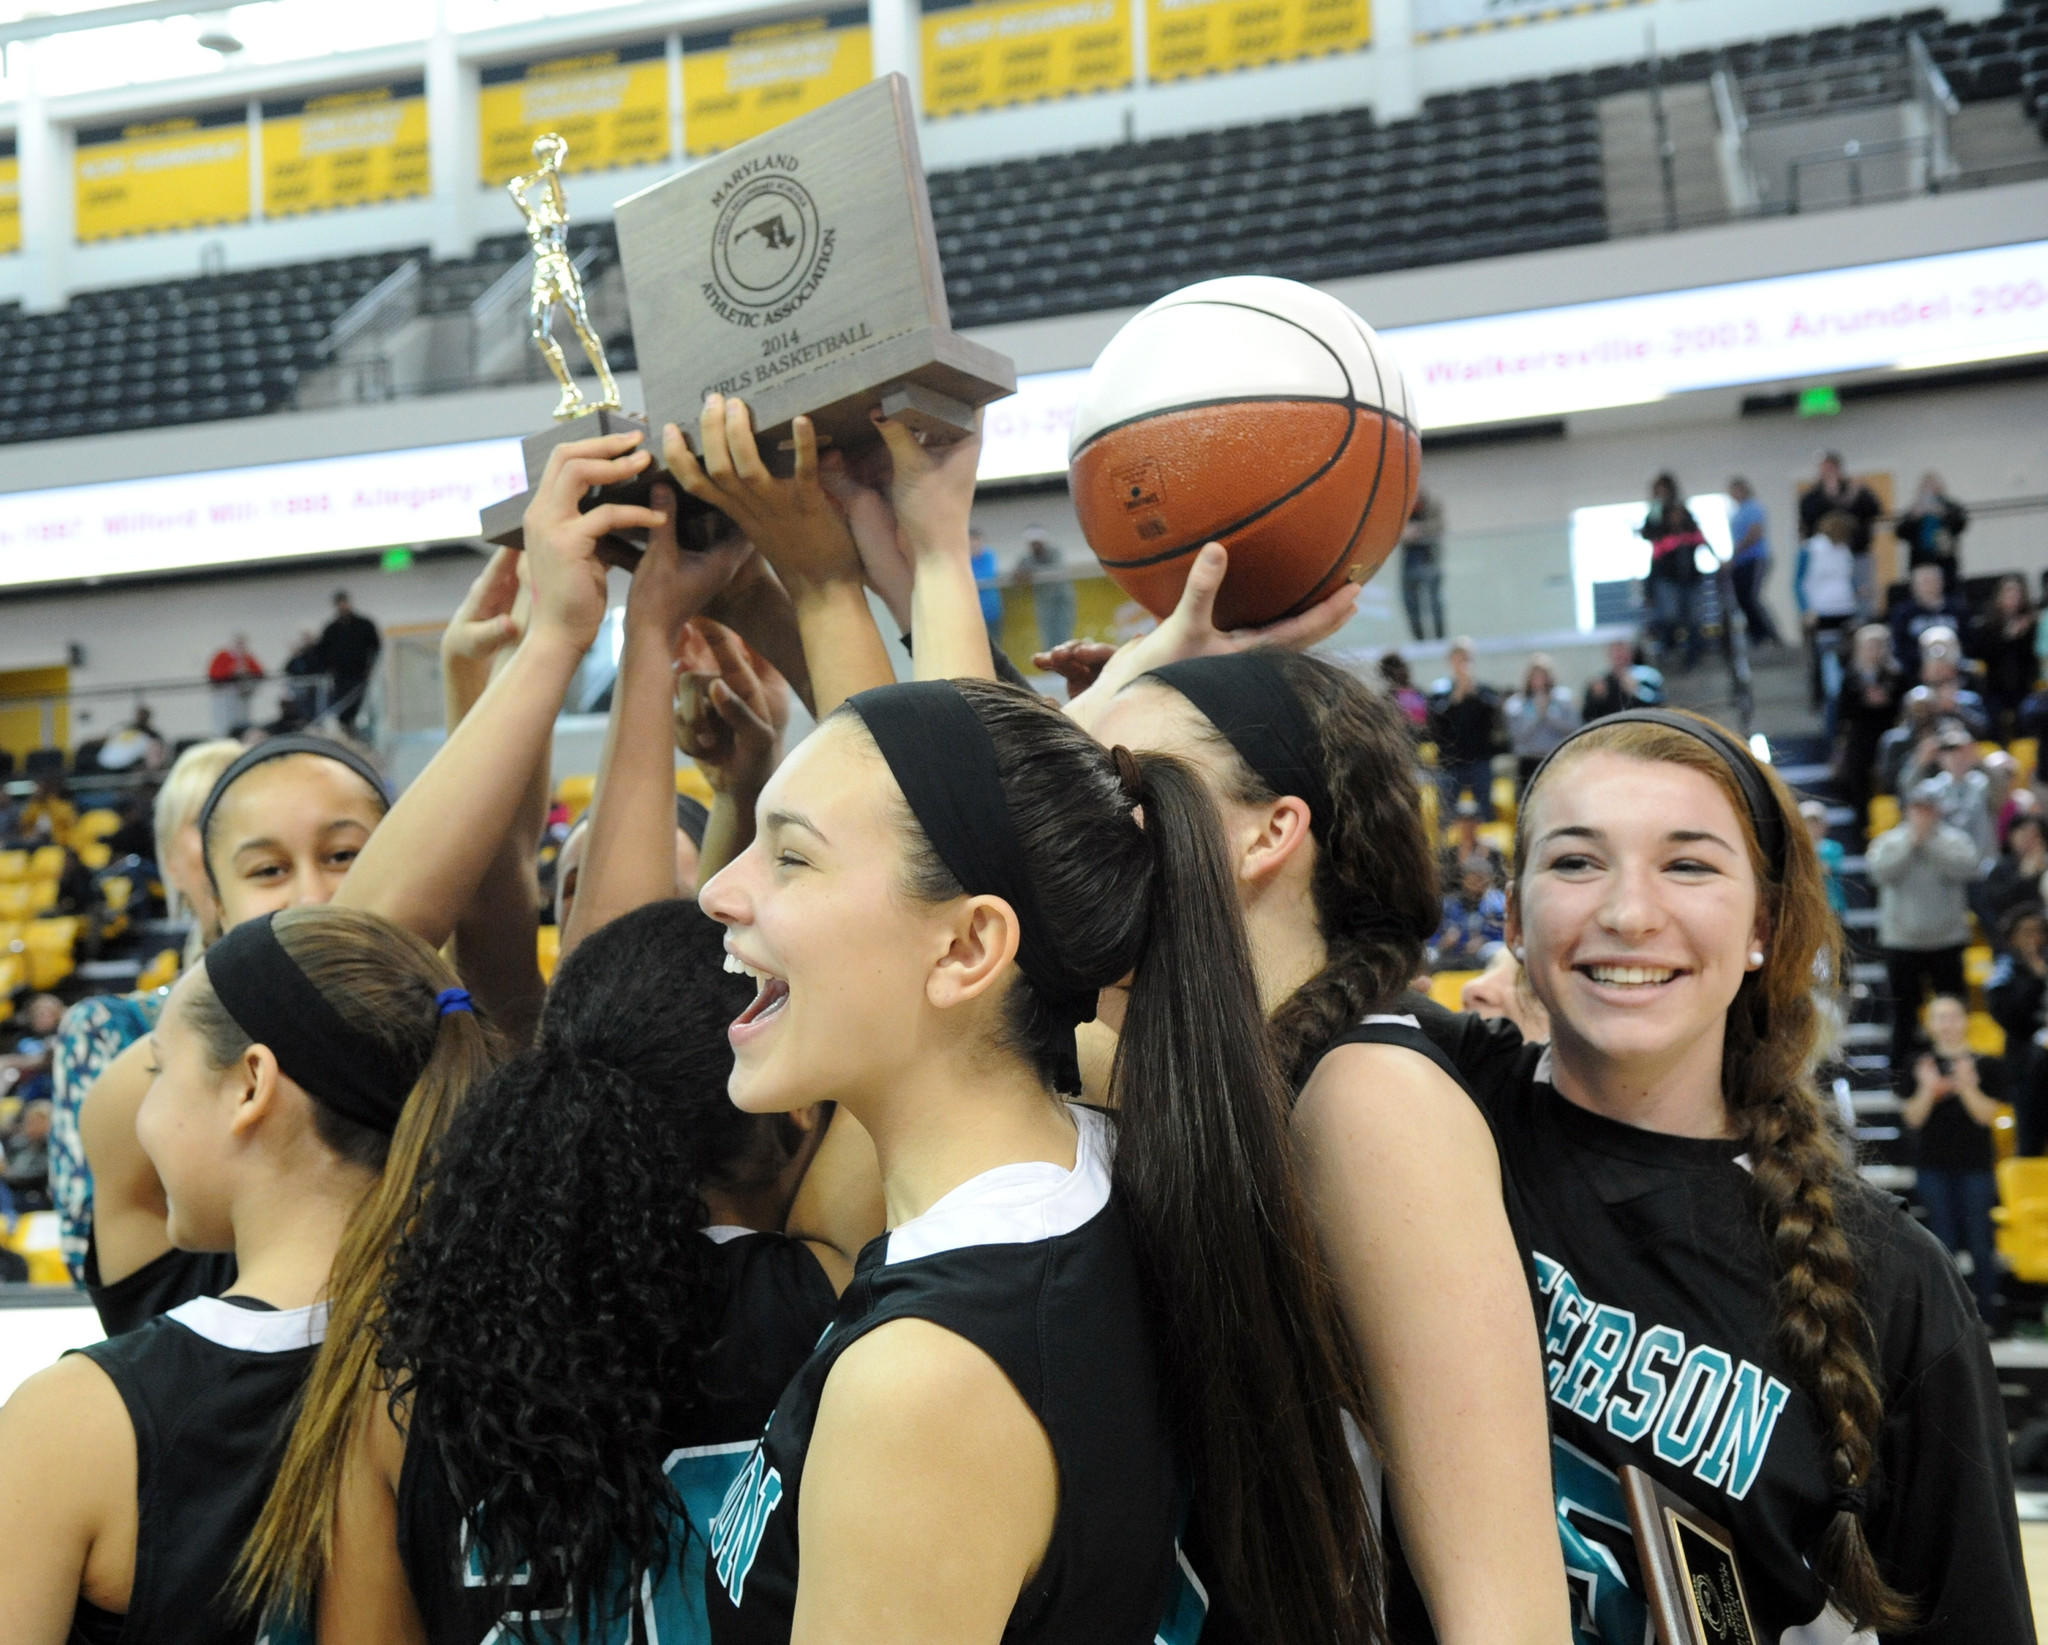 The Patterson Mill Lady Huskies basketball team celebrates aftert their win over Calvert in Saturday's Class 2A State Championship game at the SECU Arena.